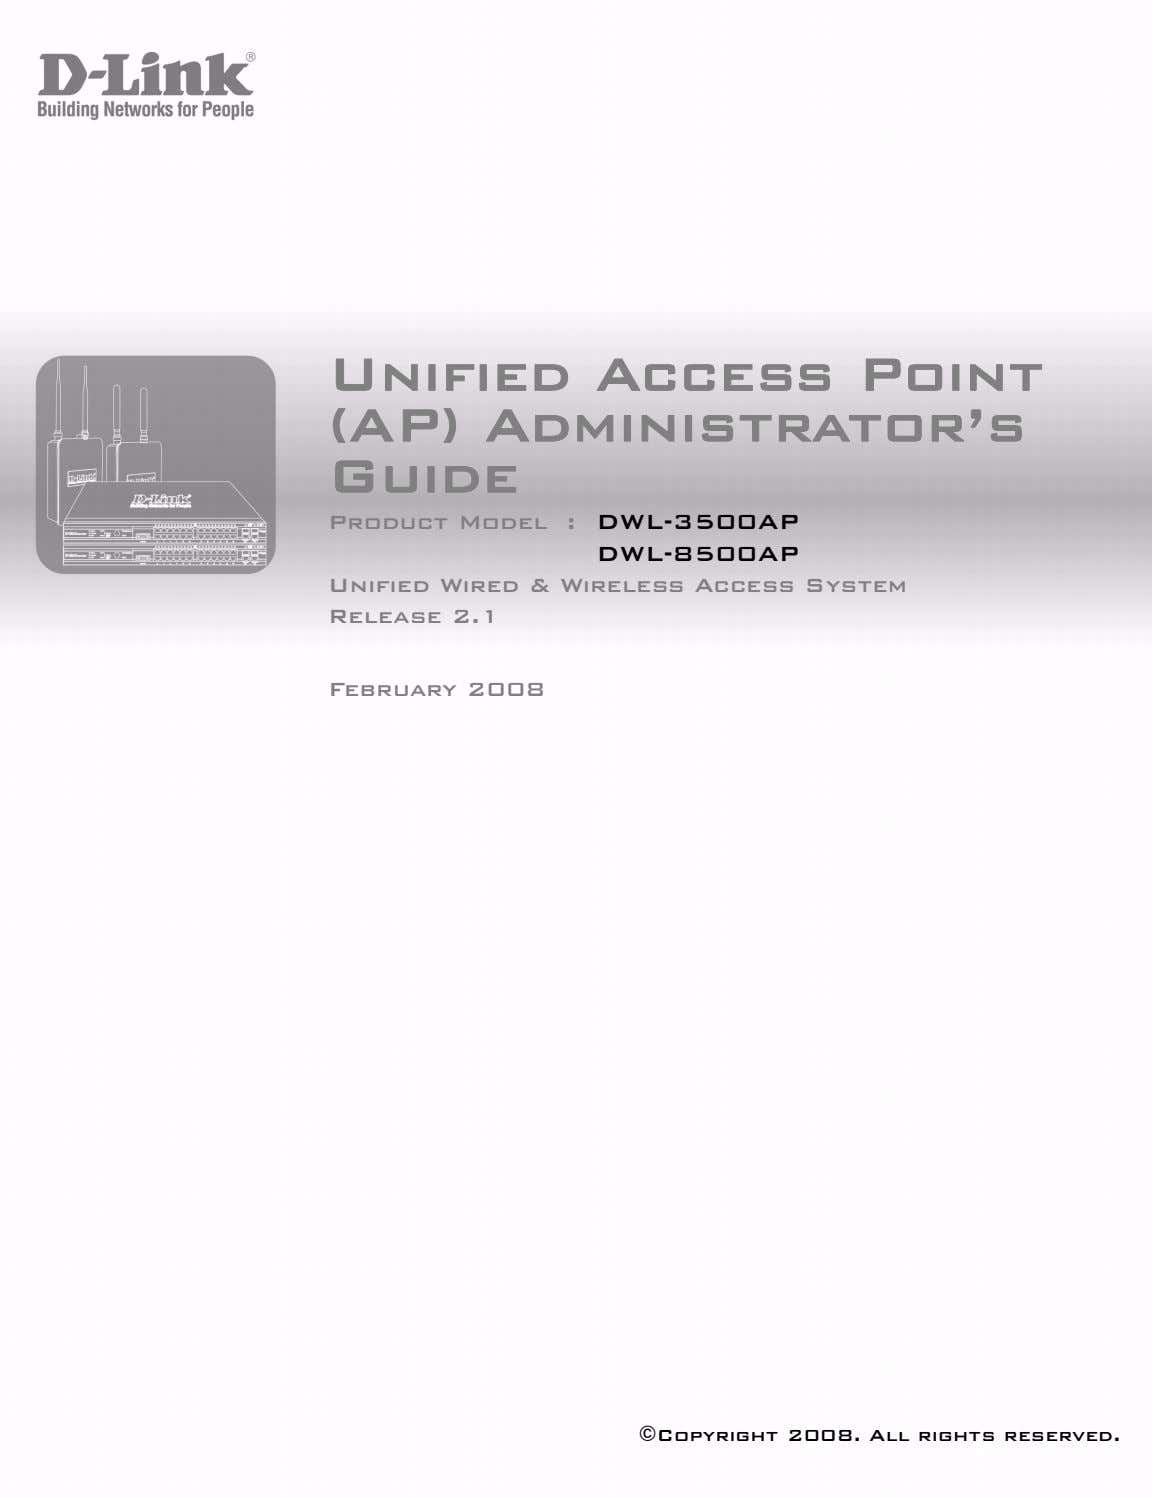 Unified Access Point (AP) Administrator's Guide Product Model : DWL-3500AP DWL-8500AP Unified Wired & Wireless